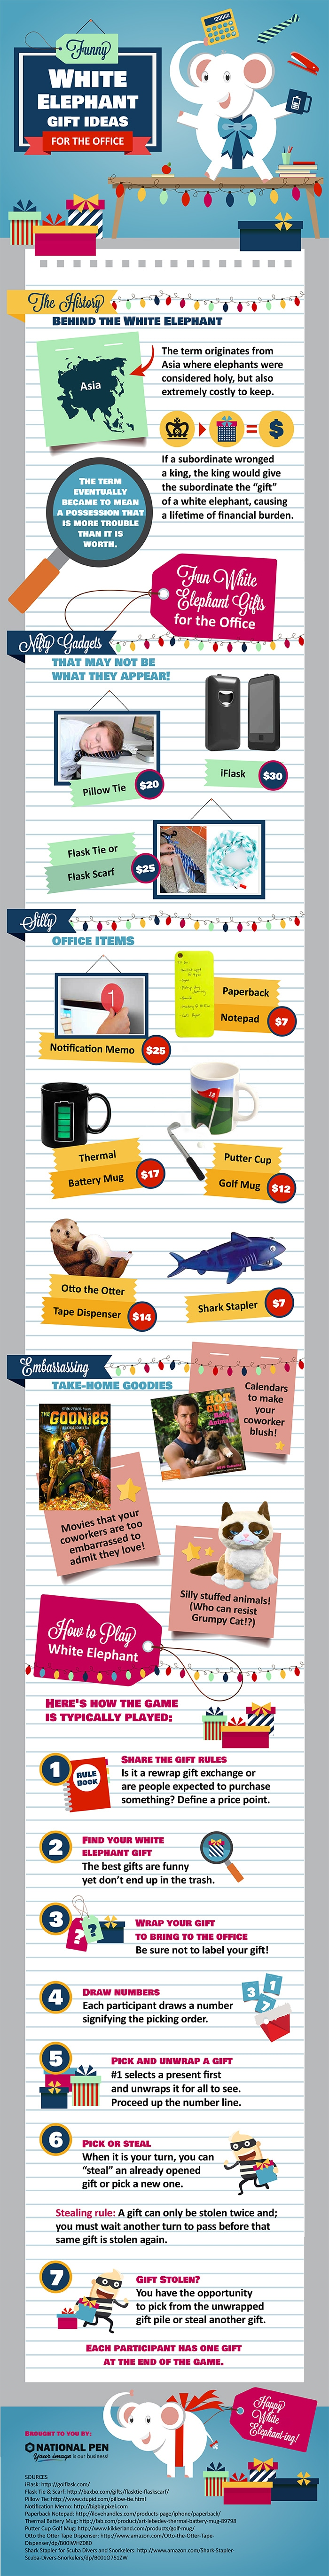 funny white elephant gifts infographic